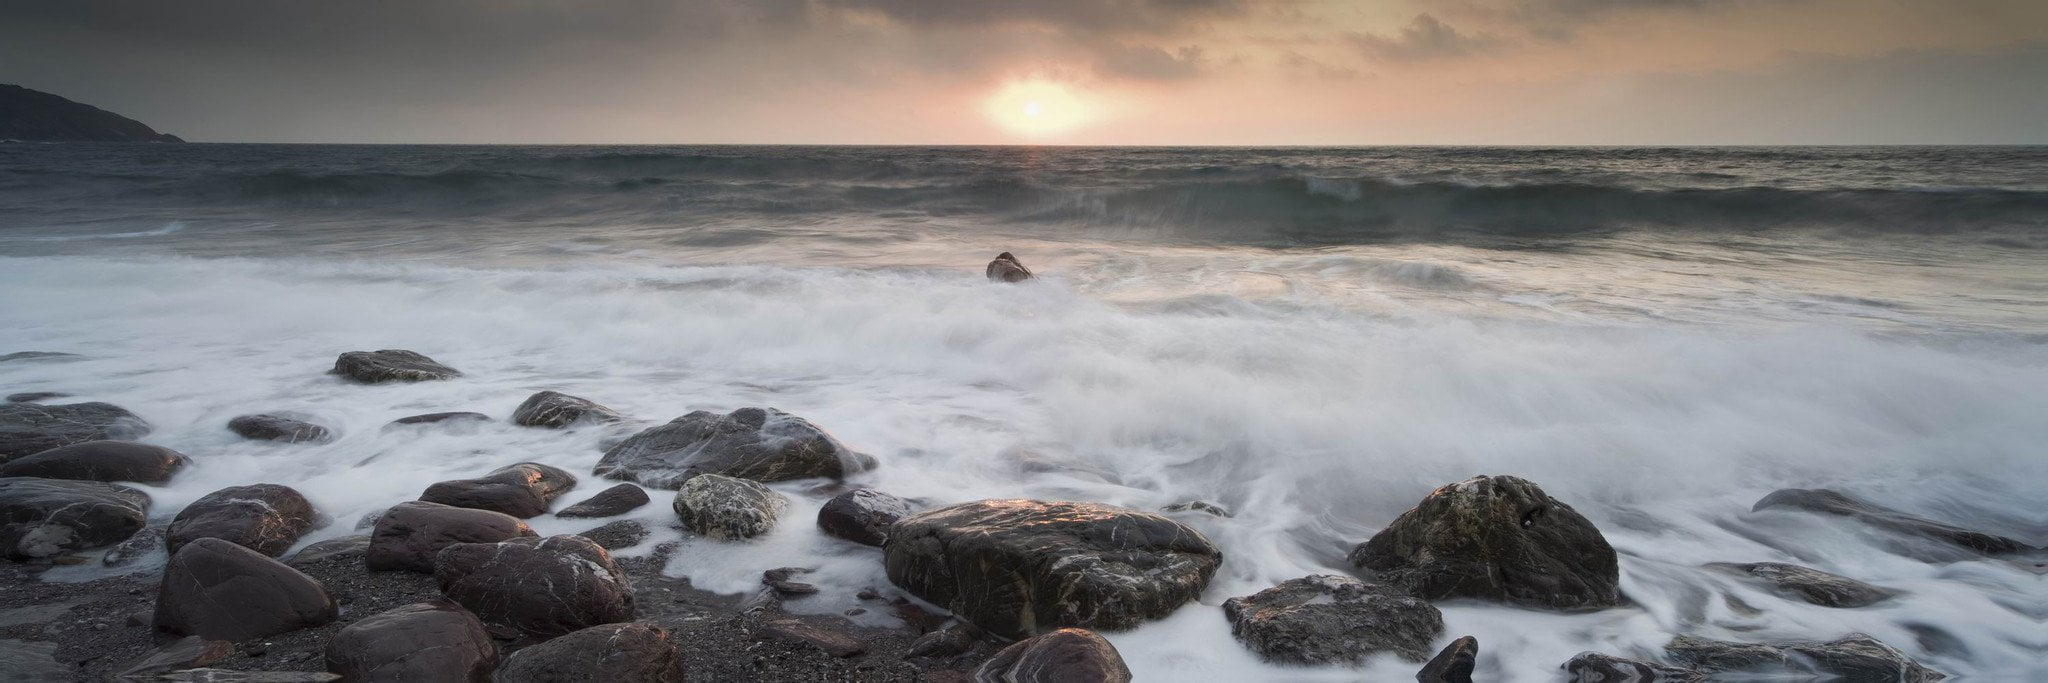 Gray Sea # 2 - Photography Print on Canvas - Canvas Panoramic Wall Art